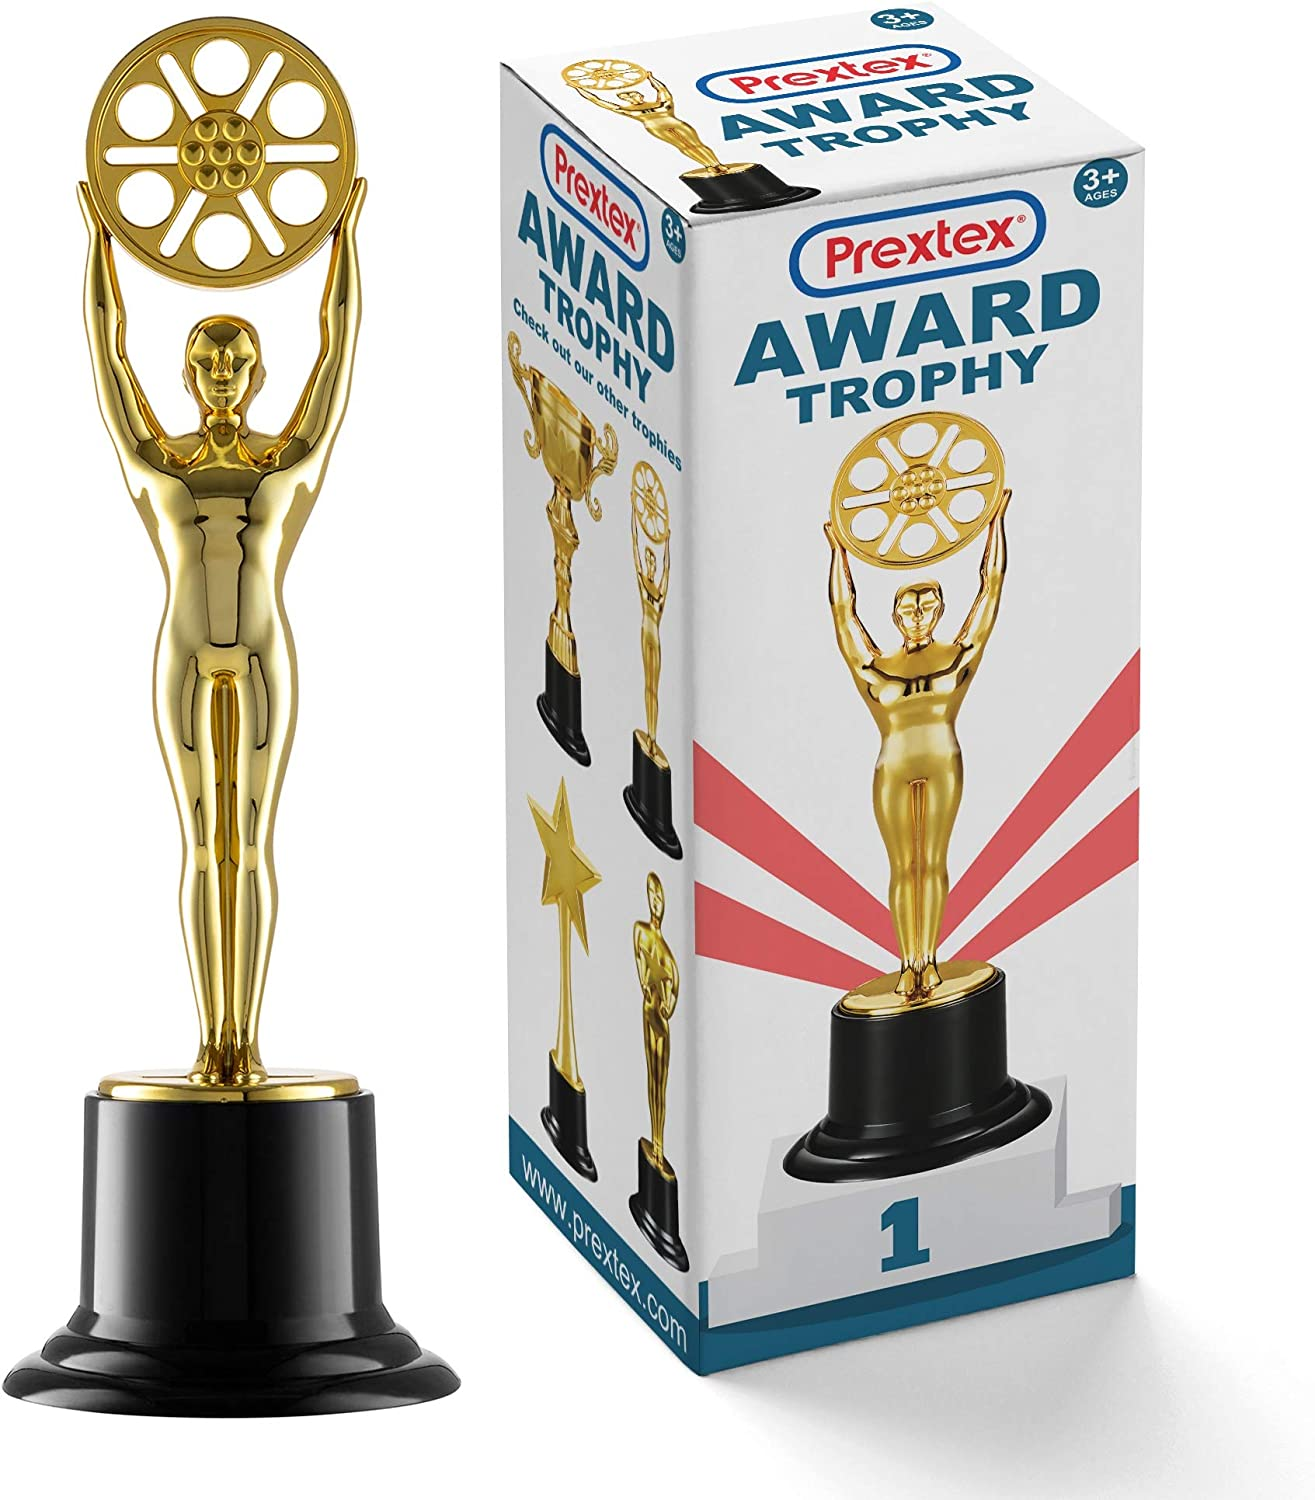 Prextex 10-Inch Gold Movie Buff Award Trophy for Trophy Awards and Party Celebrations, Award Ceremony, and Appreciation Gift, : Sports & Outdoors